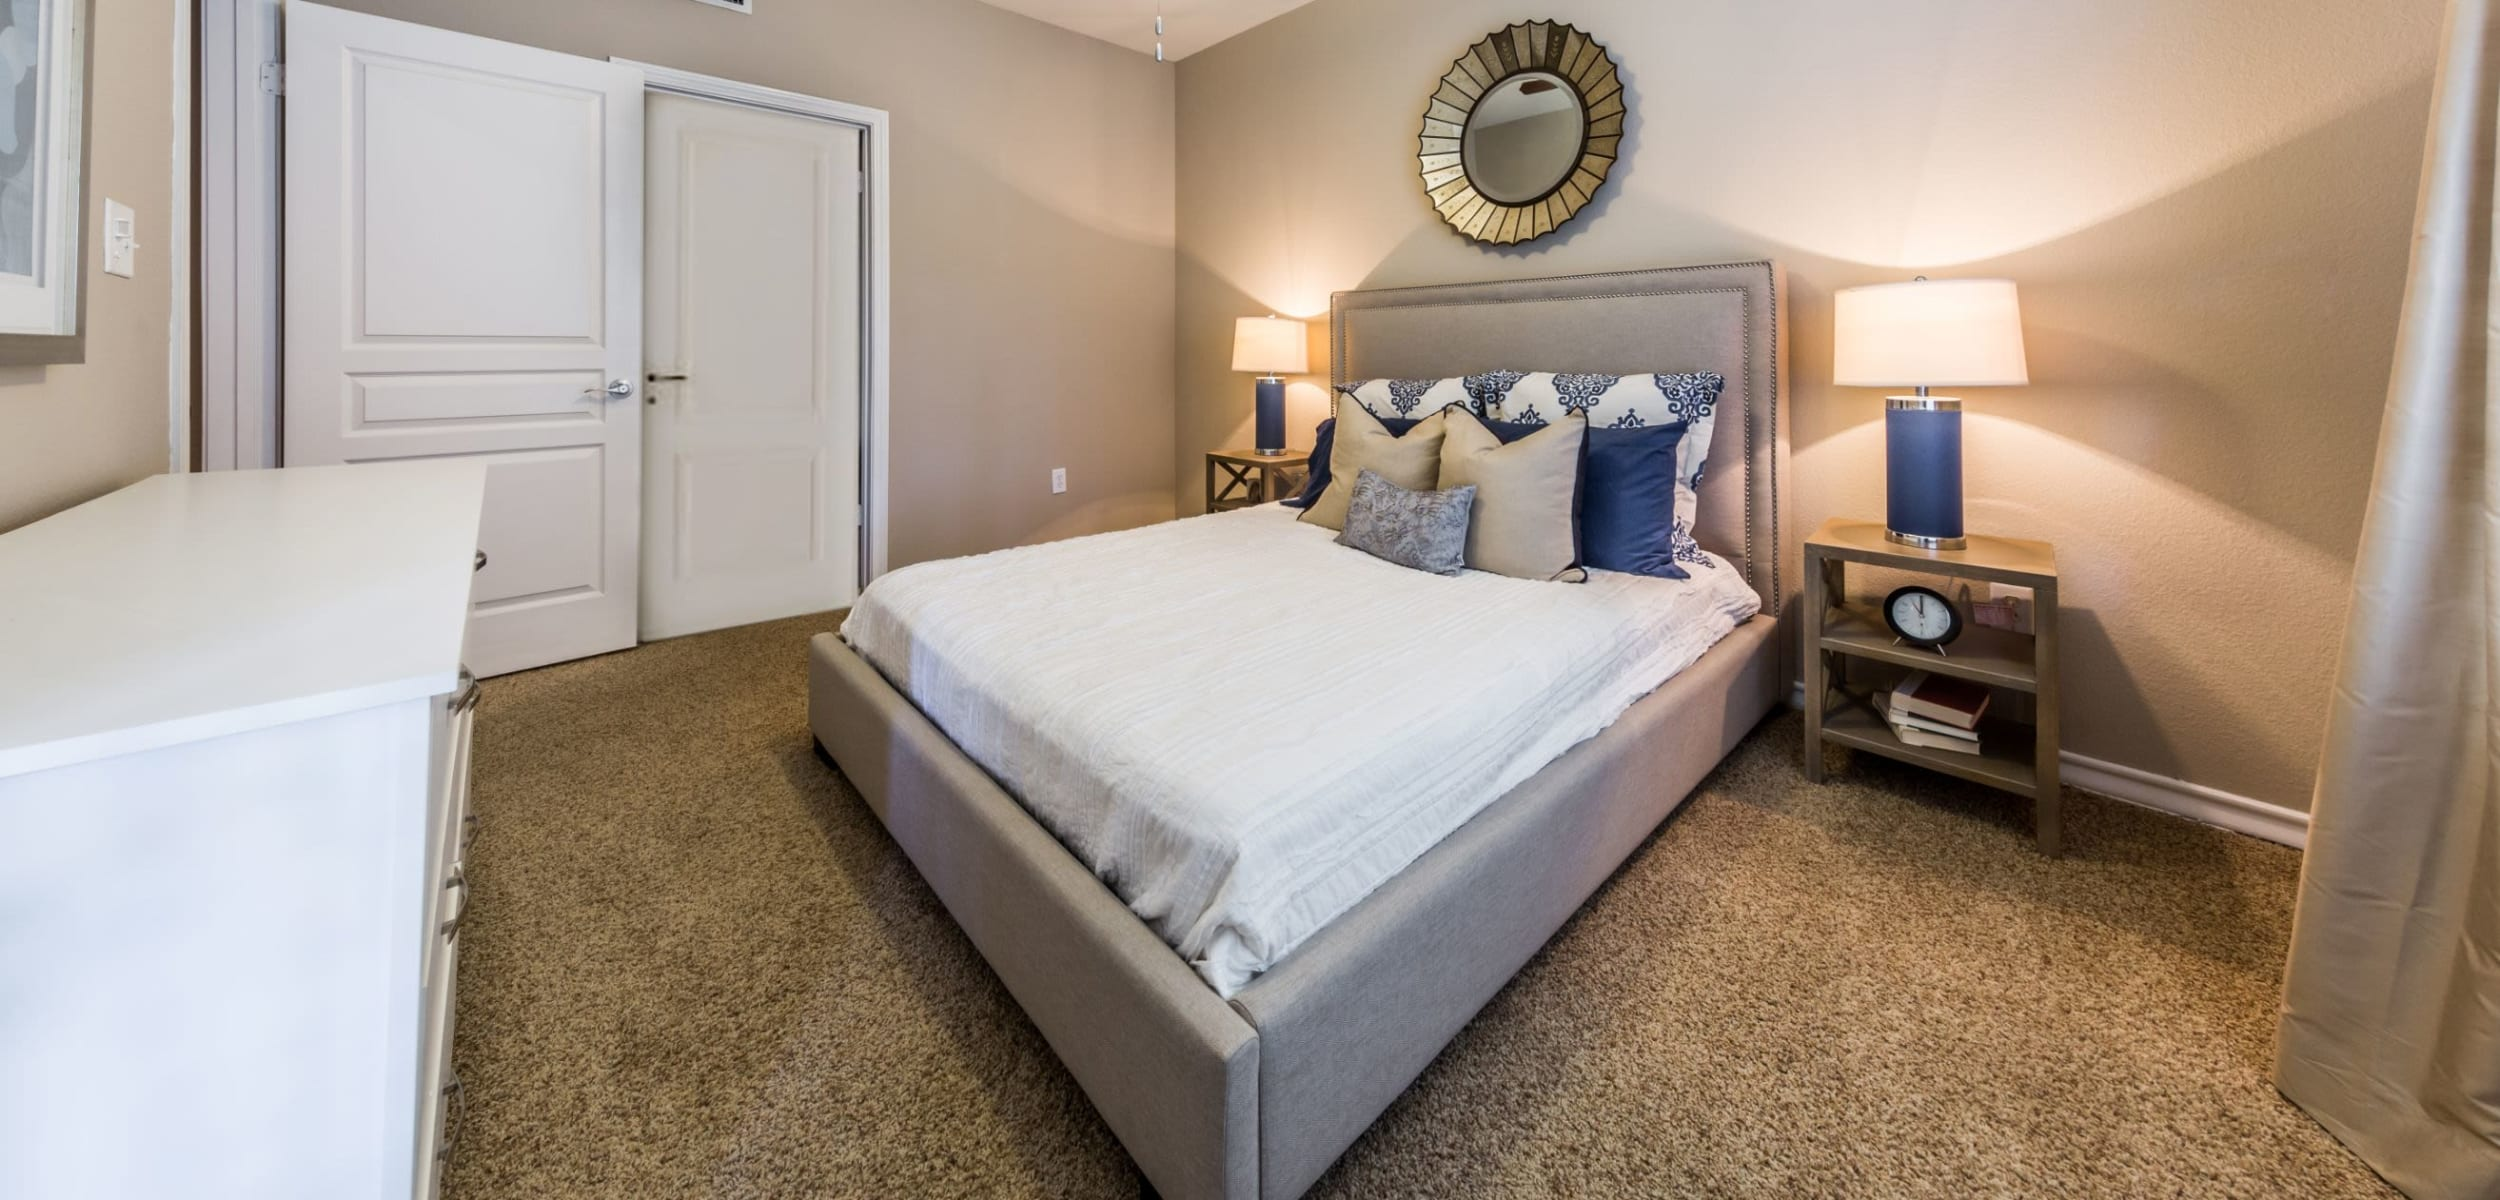 Bedroom with a ceiling fan at Marquis at Deerfield in San Antonio, Texas